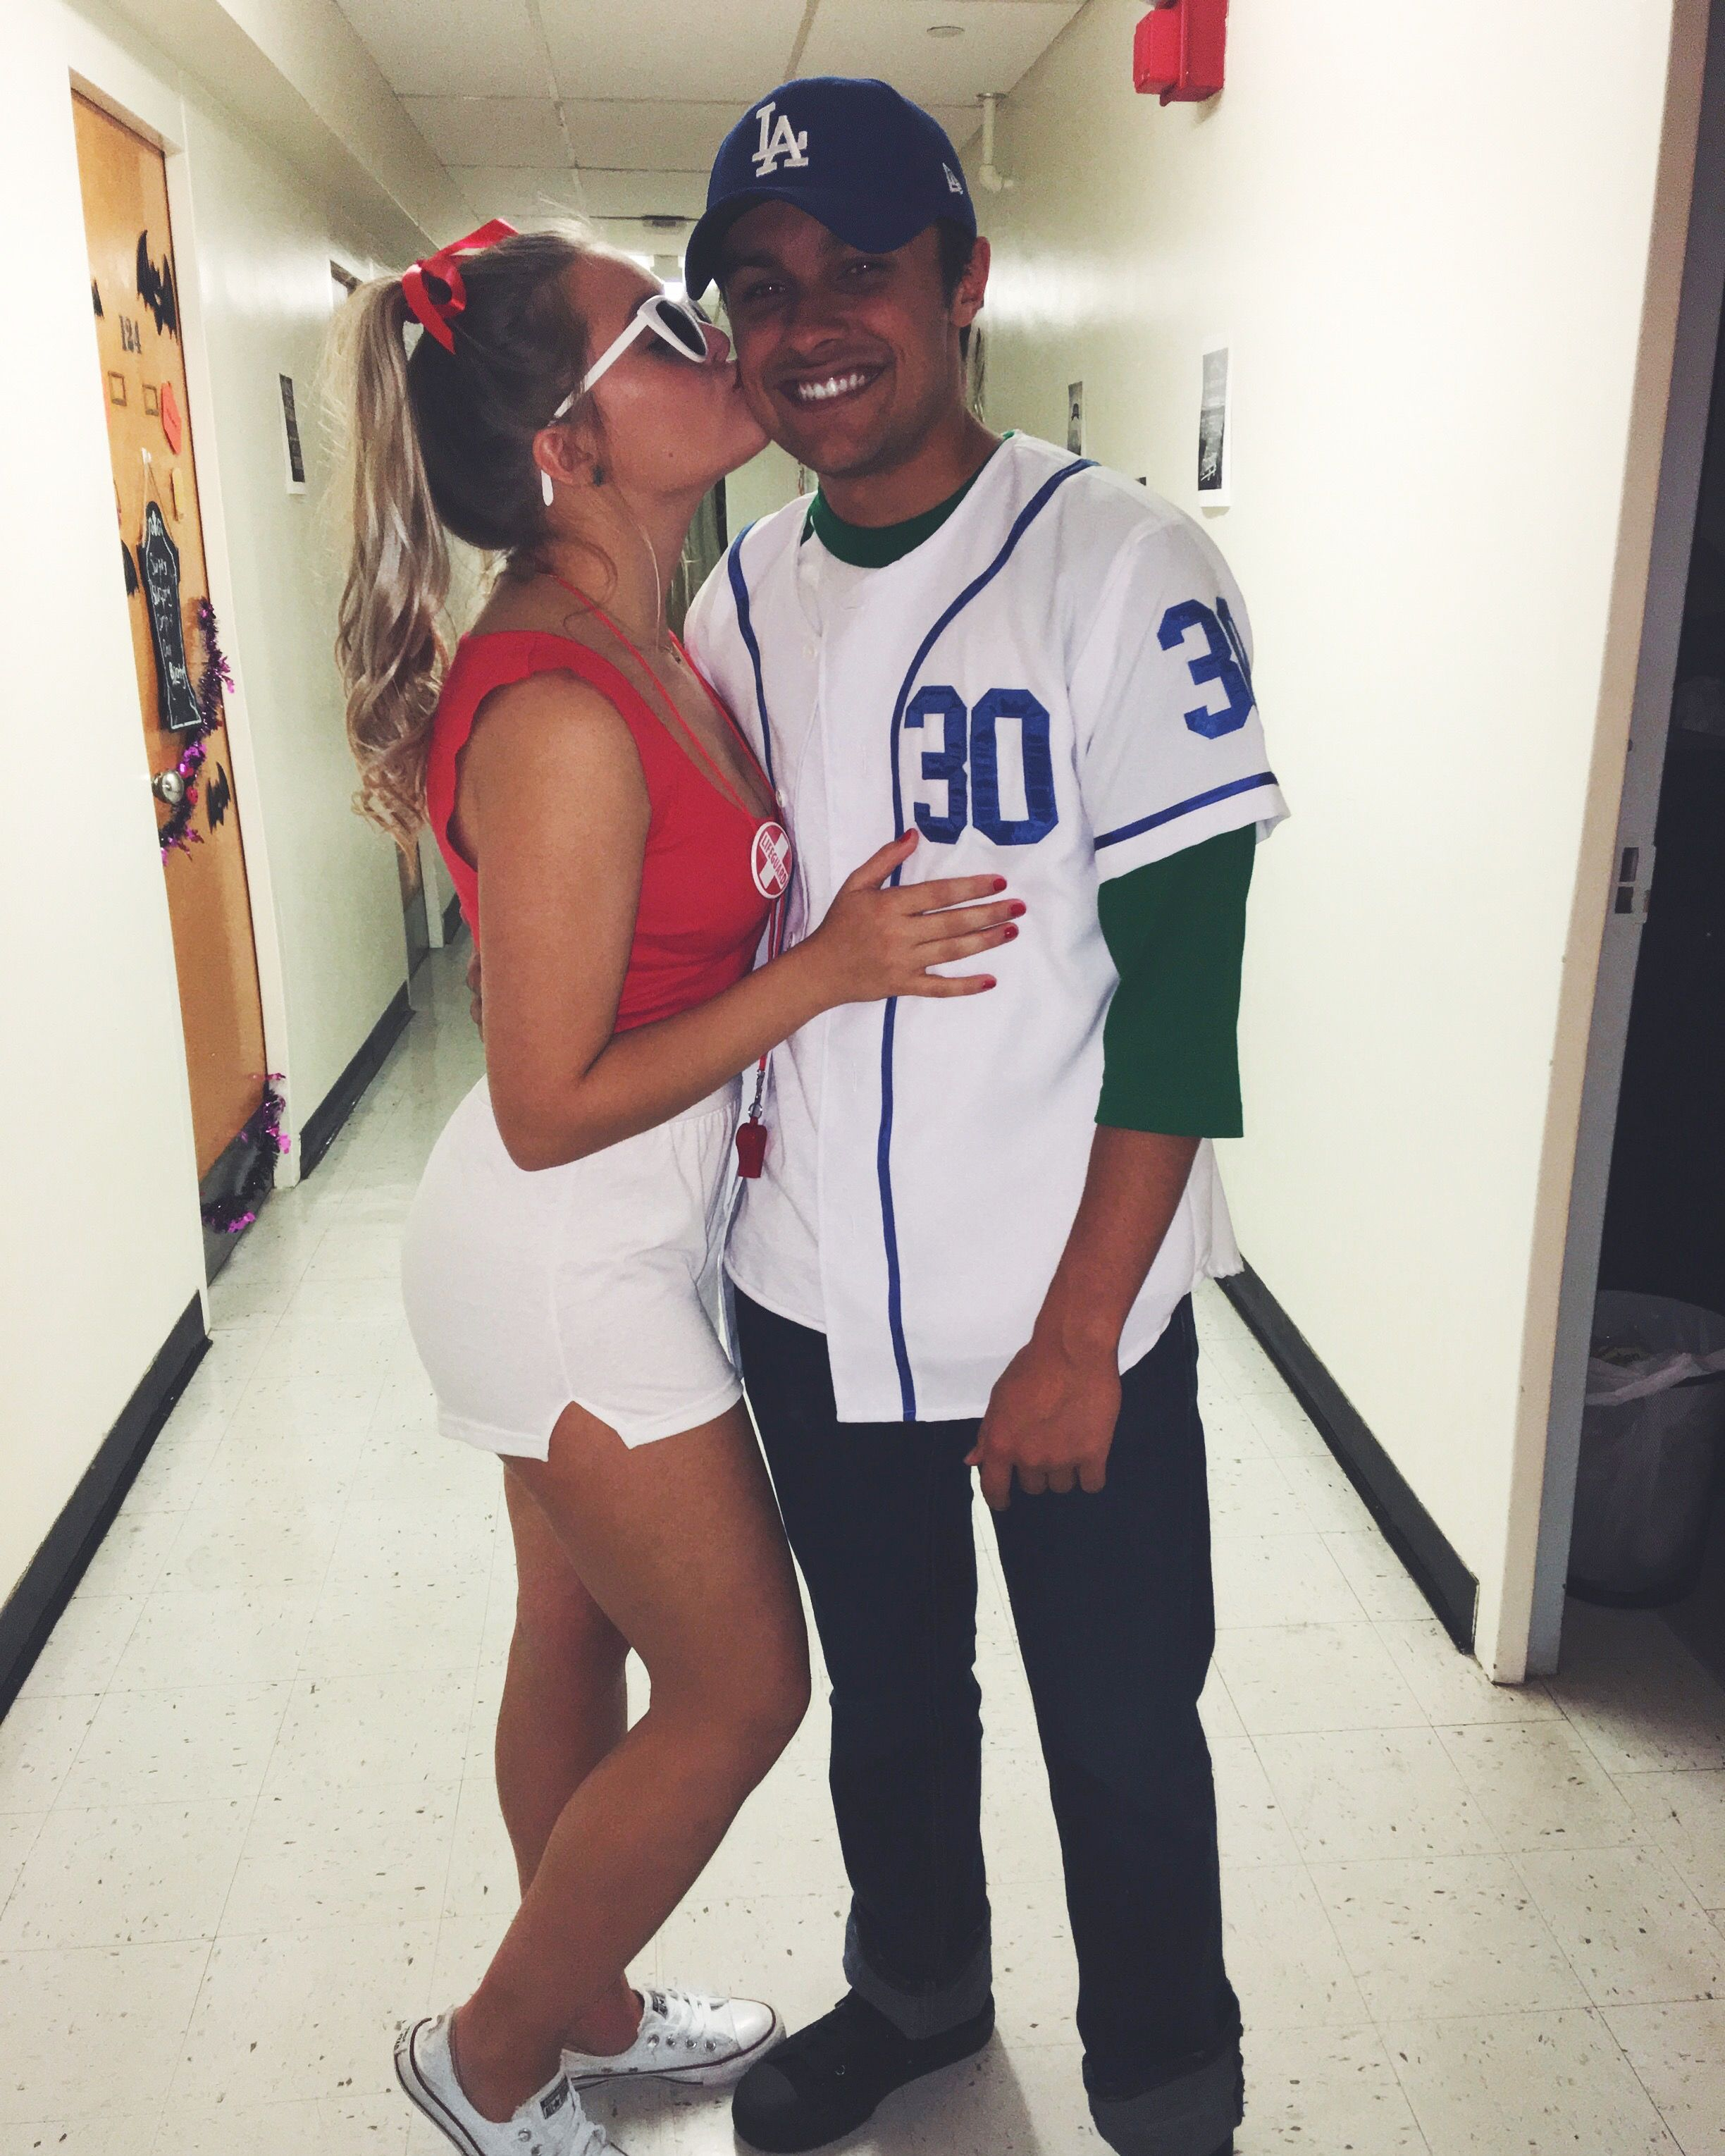 DIY easy Halloween costumes; Wendy peffercorn and benny the jet from the sandlot  sc 1 st  Pinterest & DIY easy Halloween costumes; Wendy peffercorn and benny the jet from ...